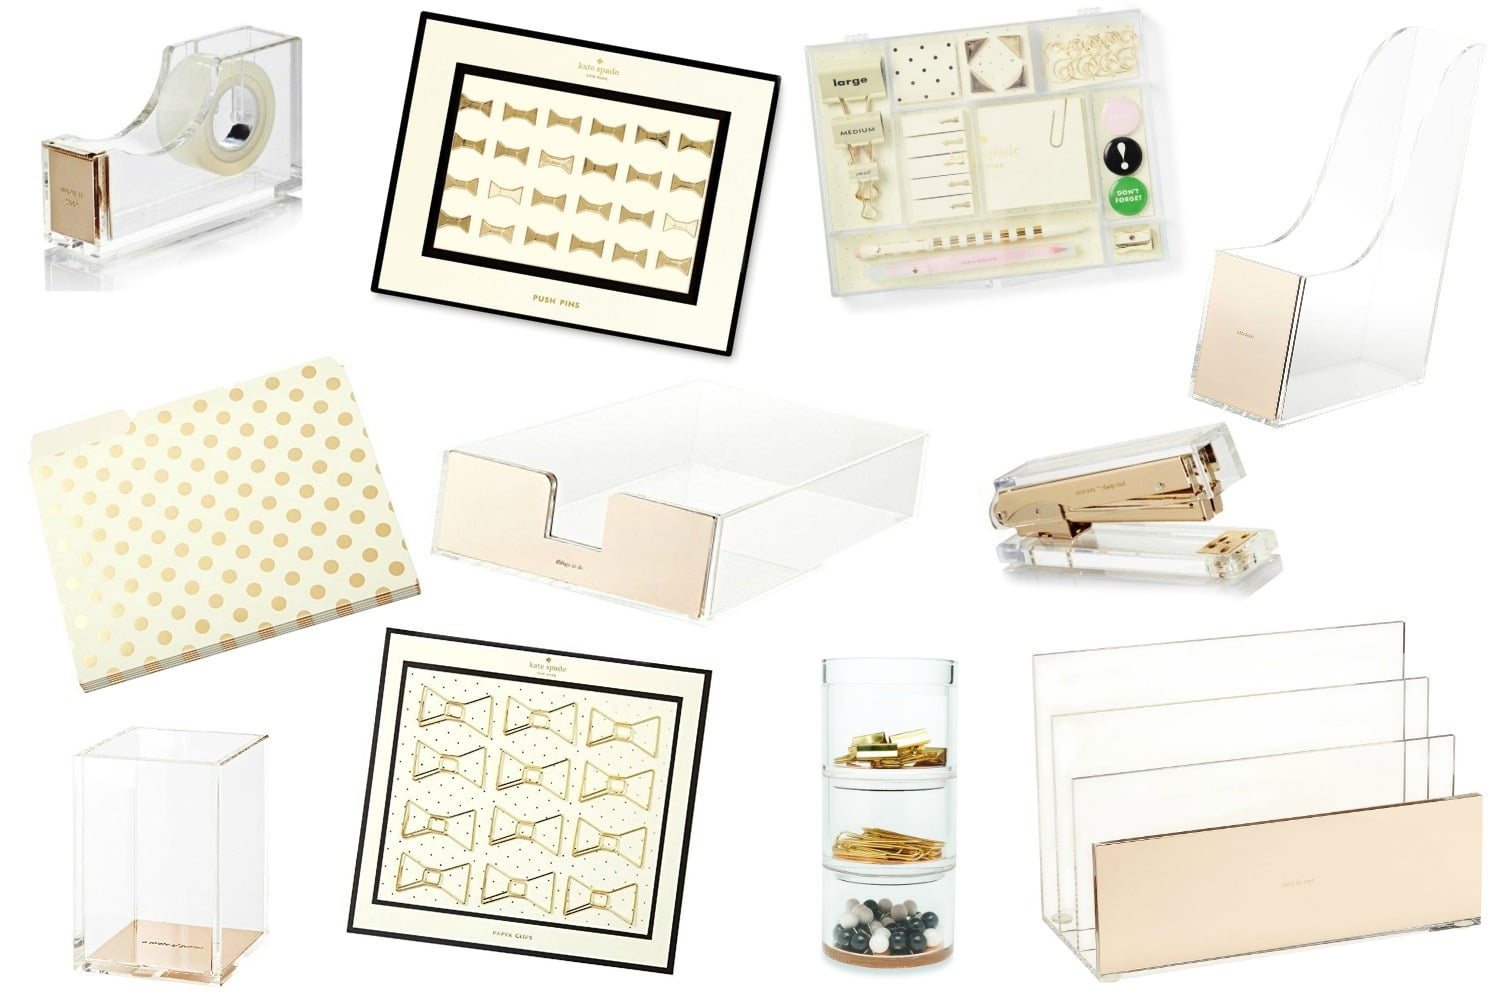 Eleven Kate Spade Office Supplies To Glam Up Your Desk As The Bunny Hops